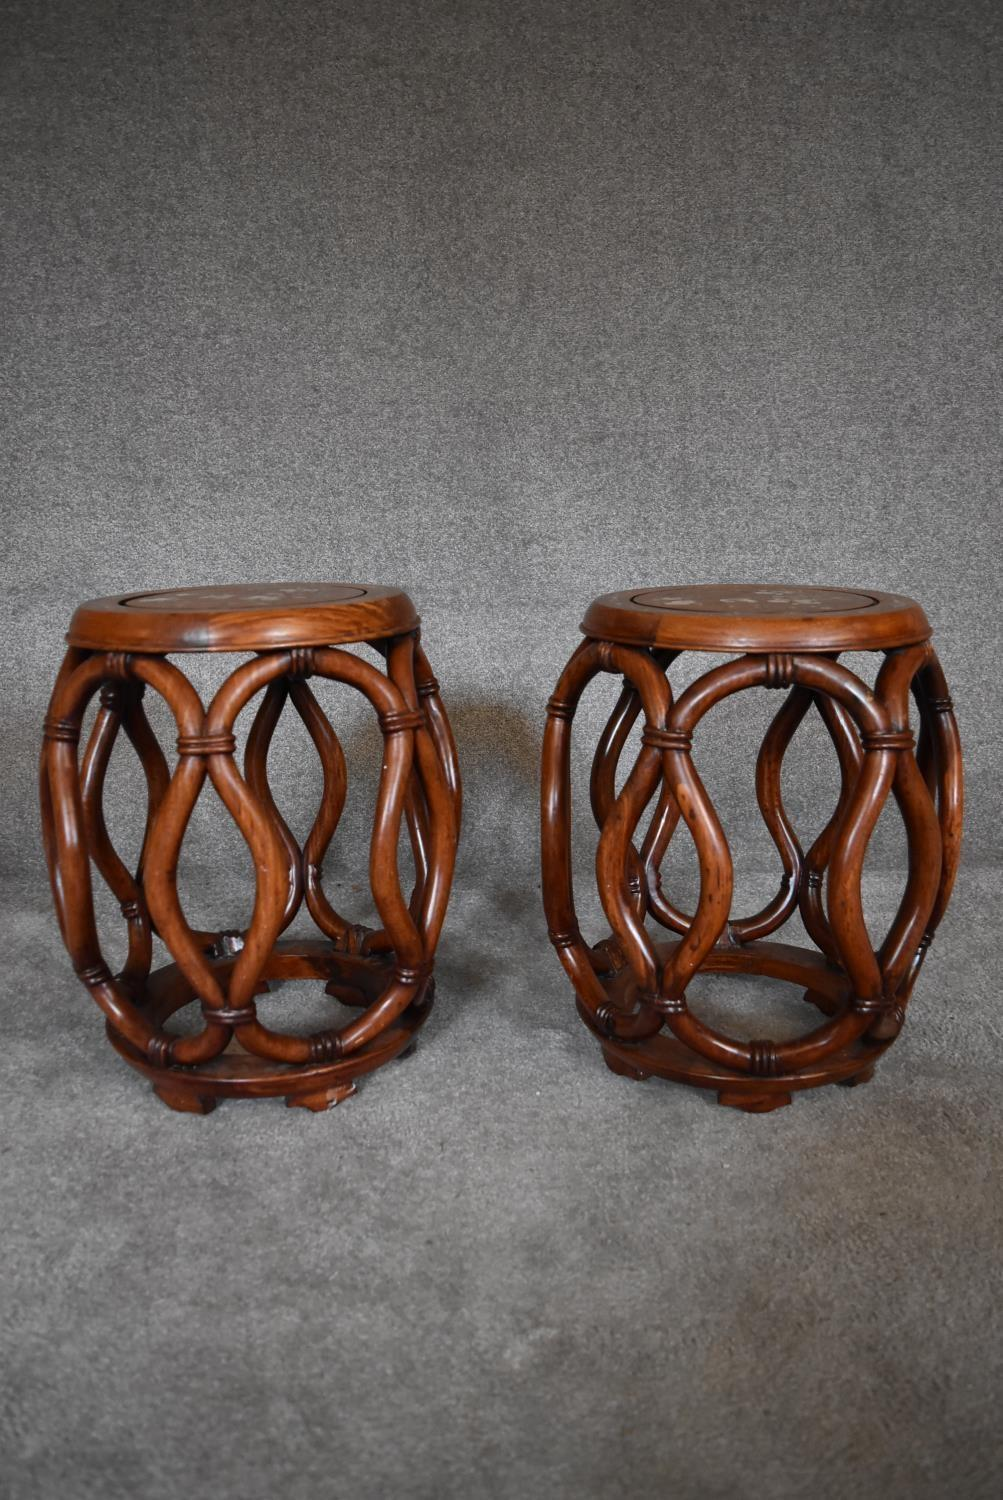 A pair of Chinese rosewood and mother of pearl inlaid barrel shaped stools with latticework sides.